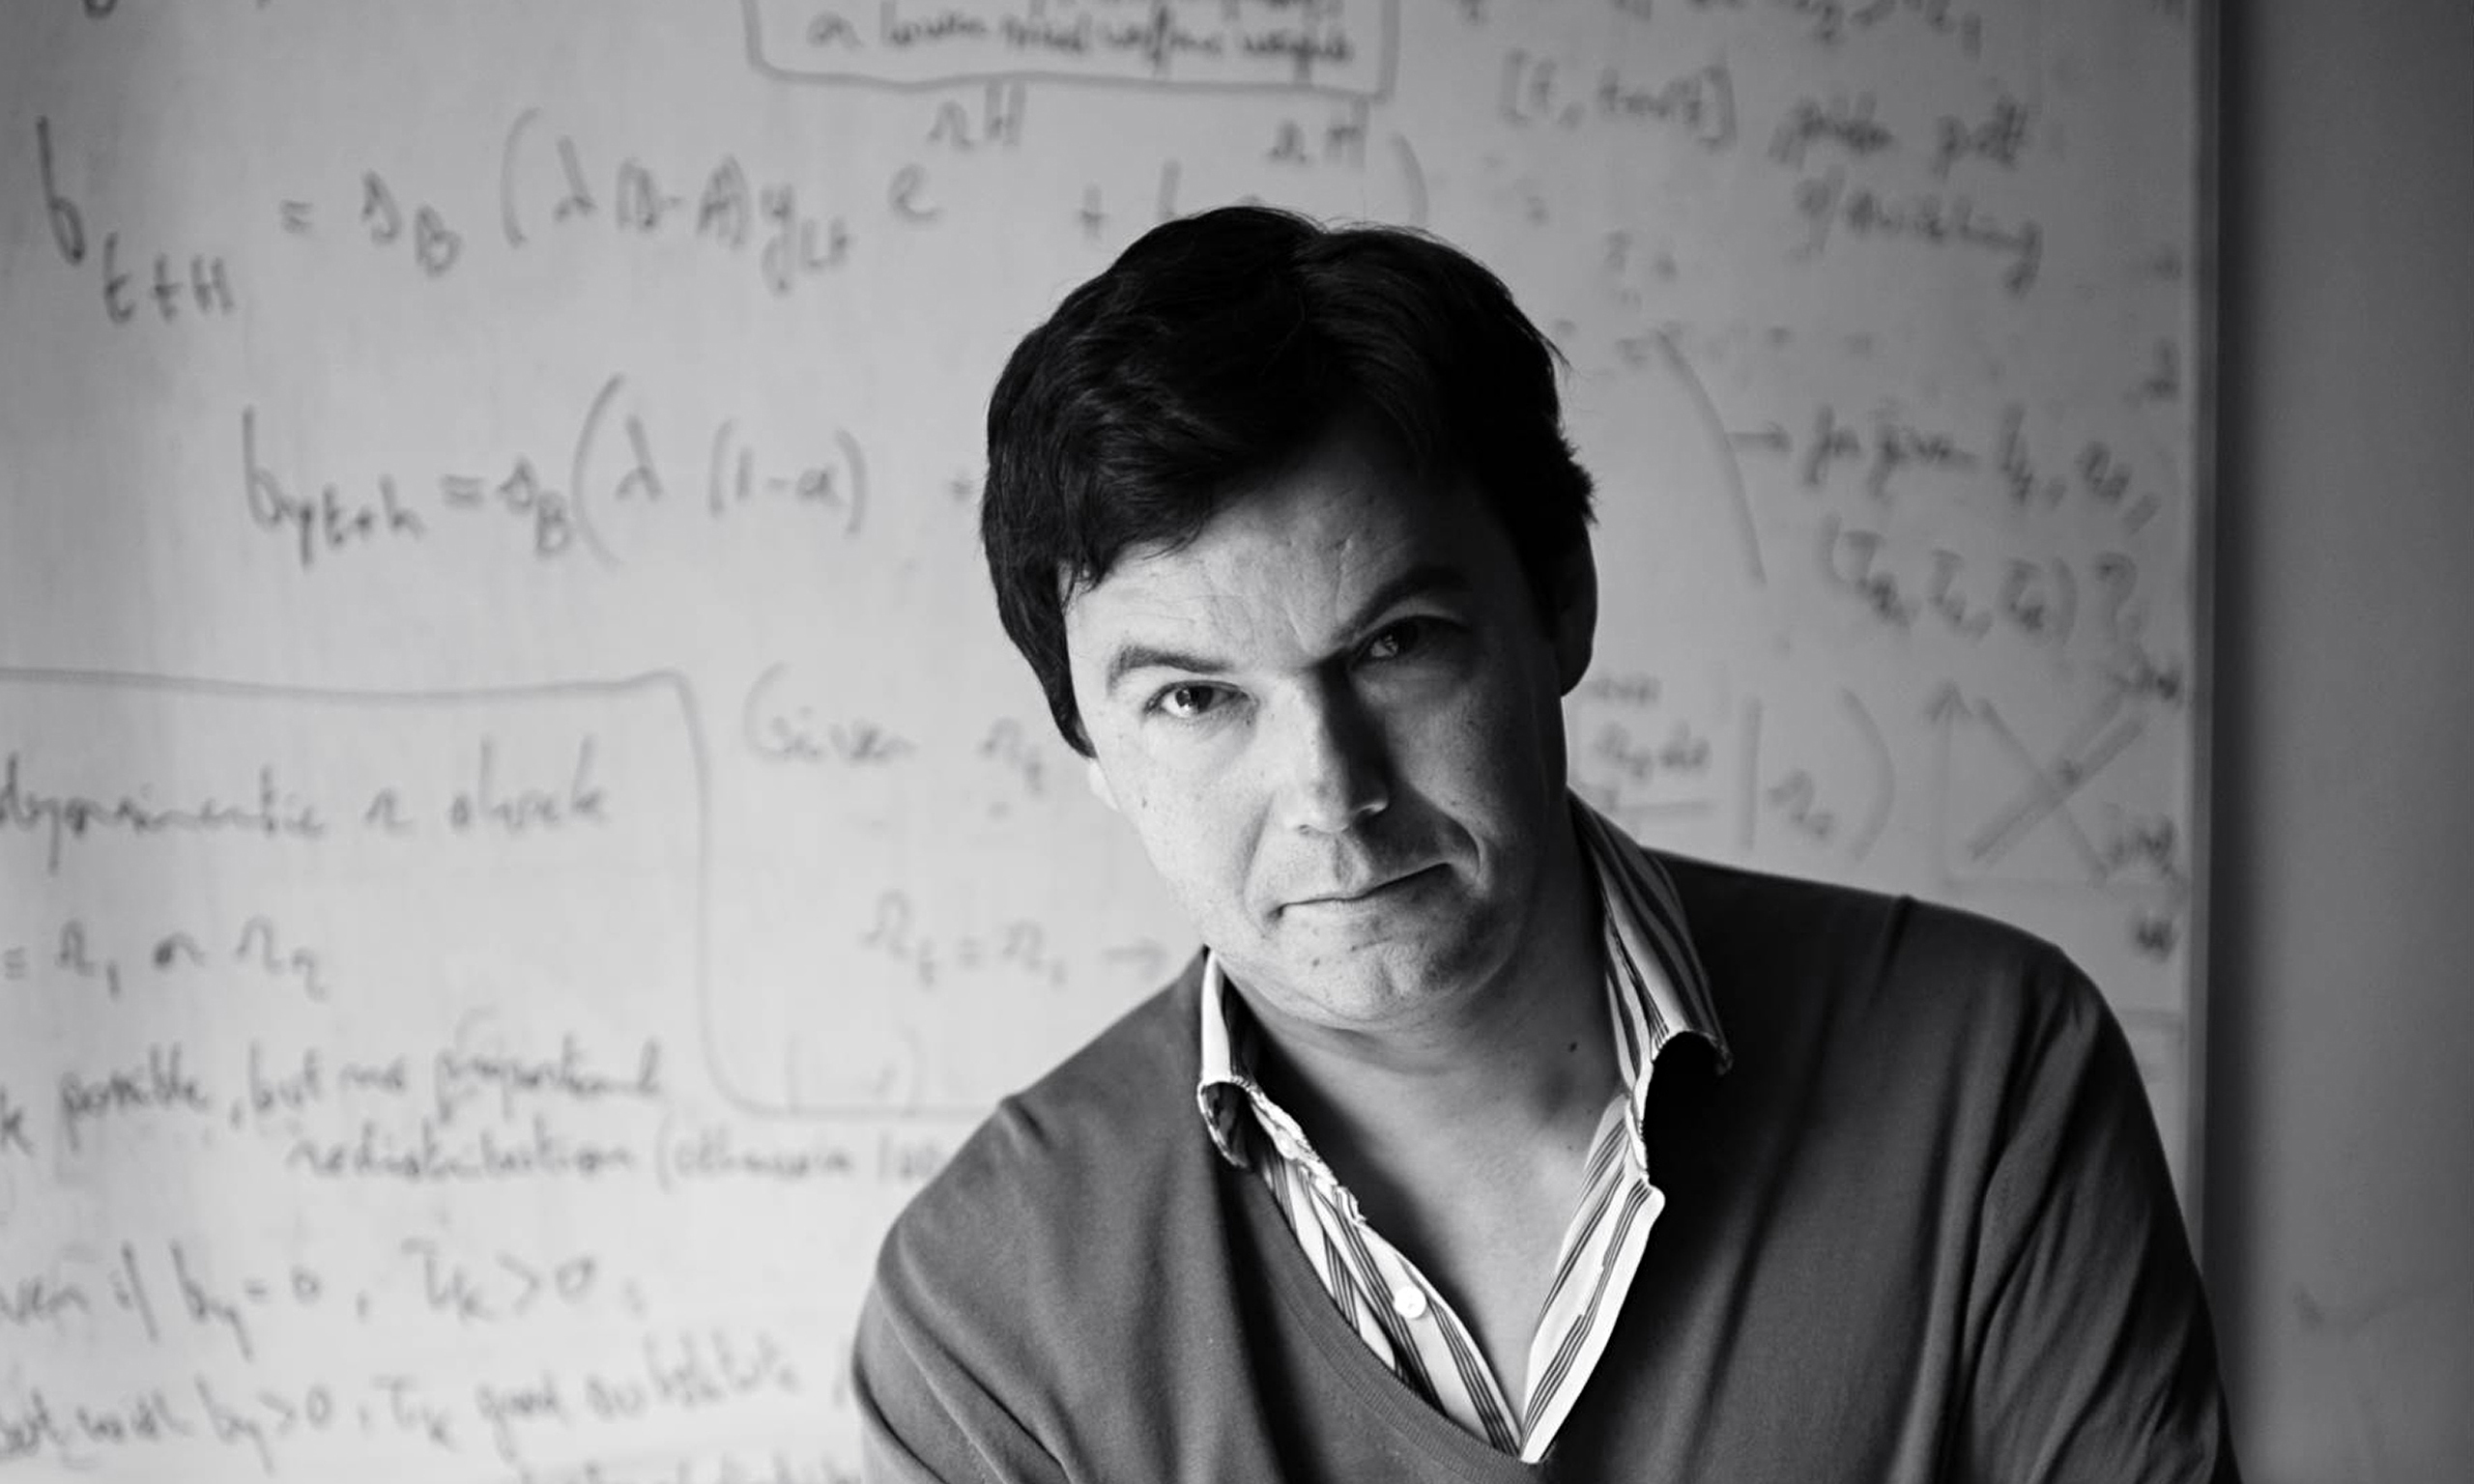 Thomas-Piketty-014.jpg